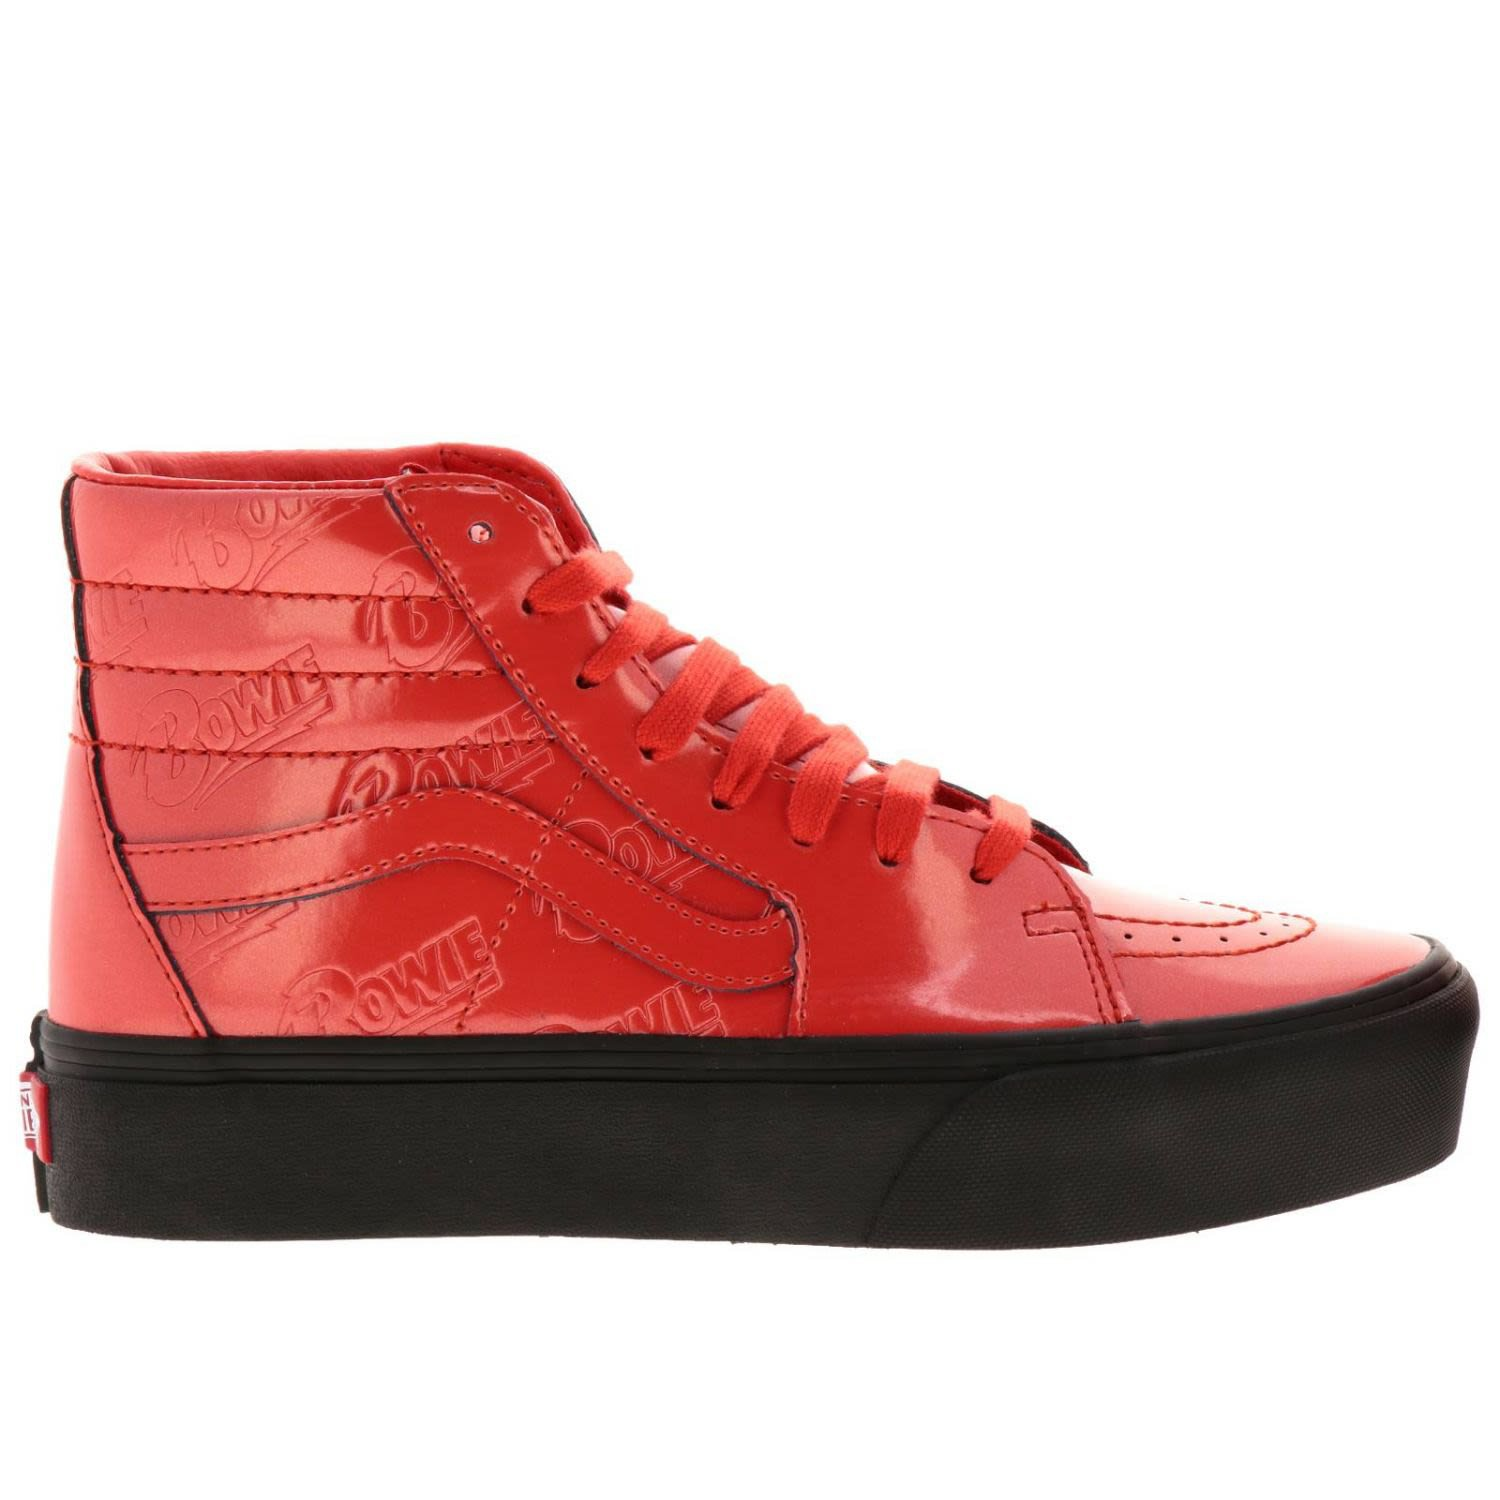 Vans Sneakers Shoes Women Vans